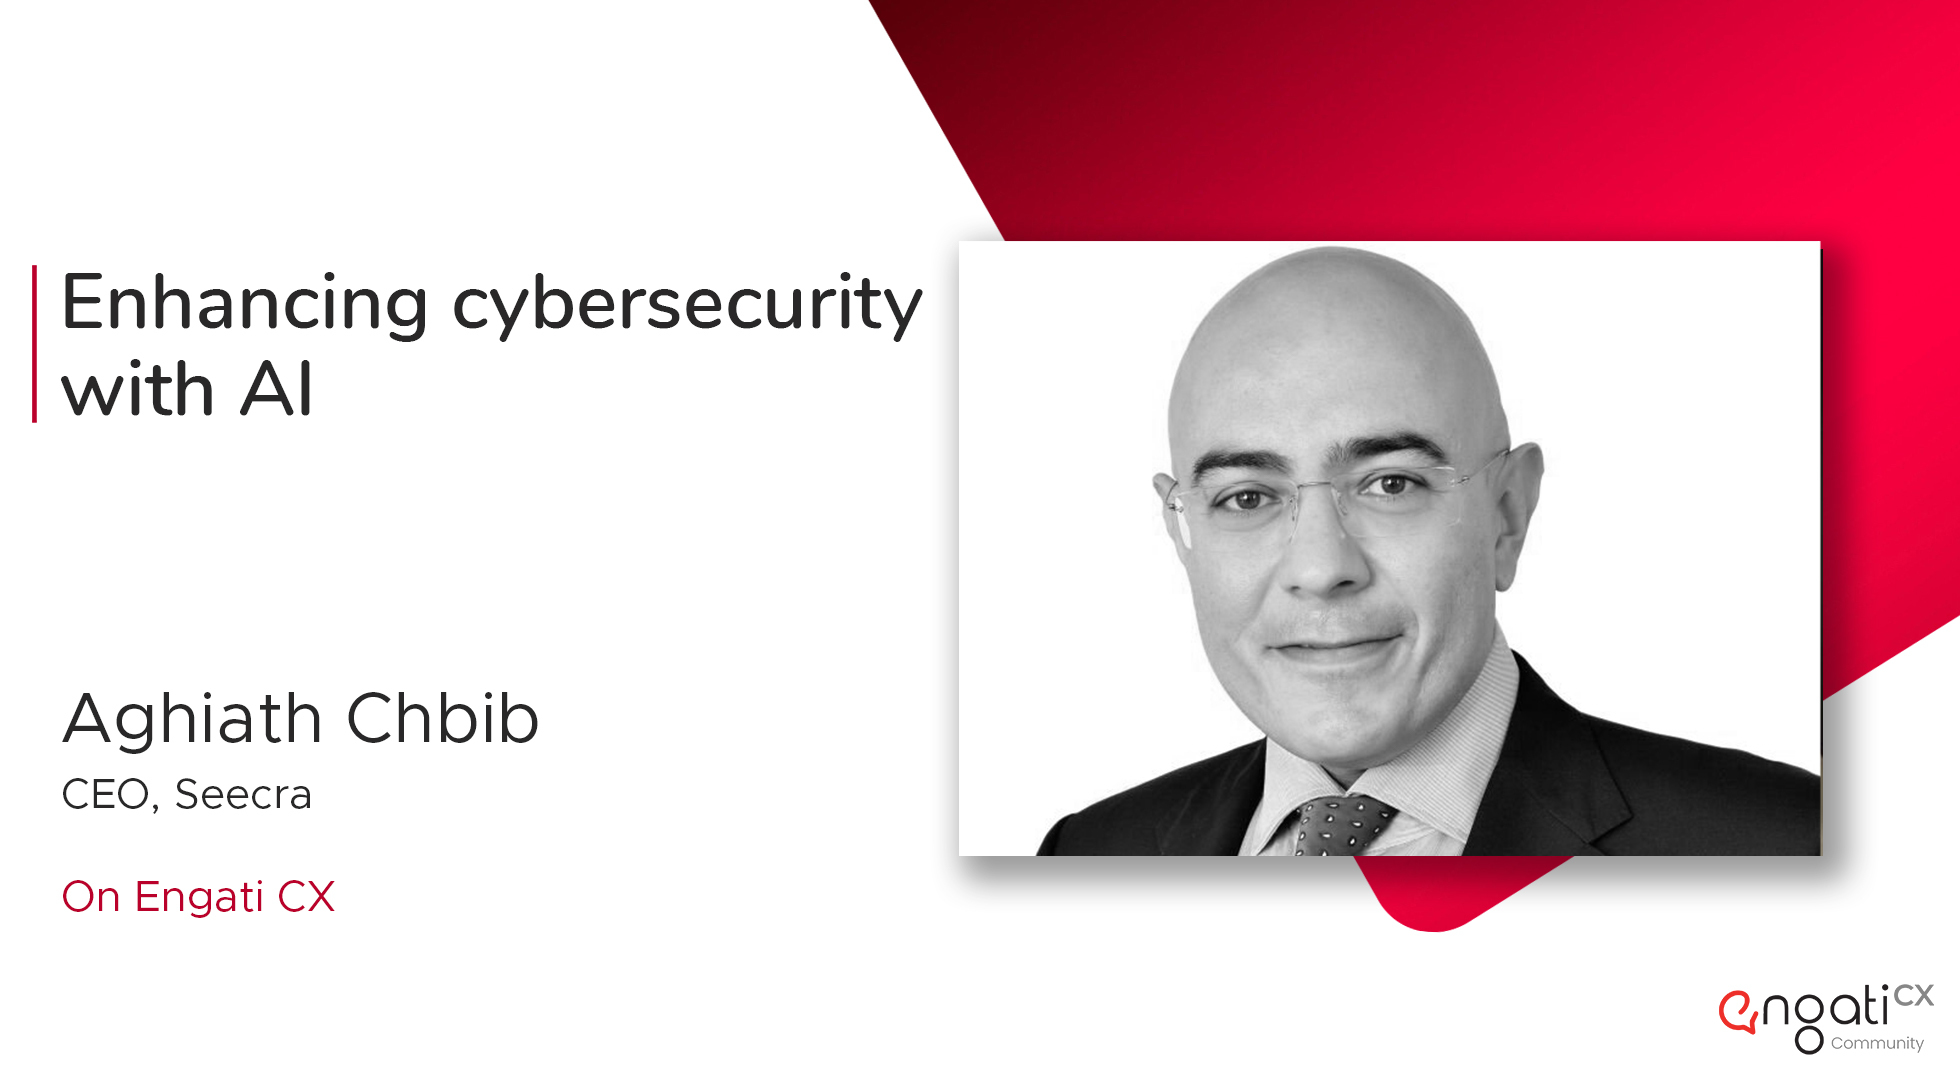 Enhancing cybersecurity with AI | Aghiath Chbib | Engati CX